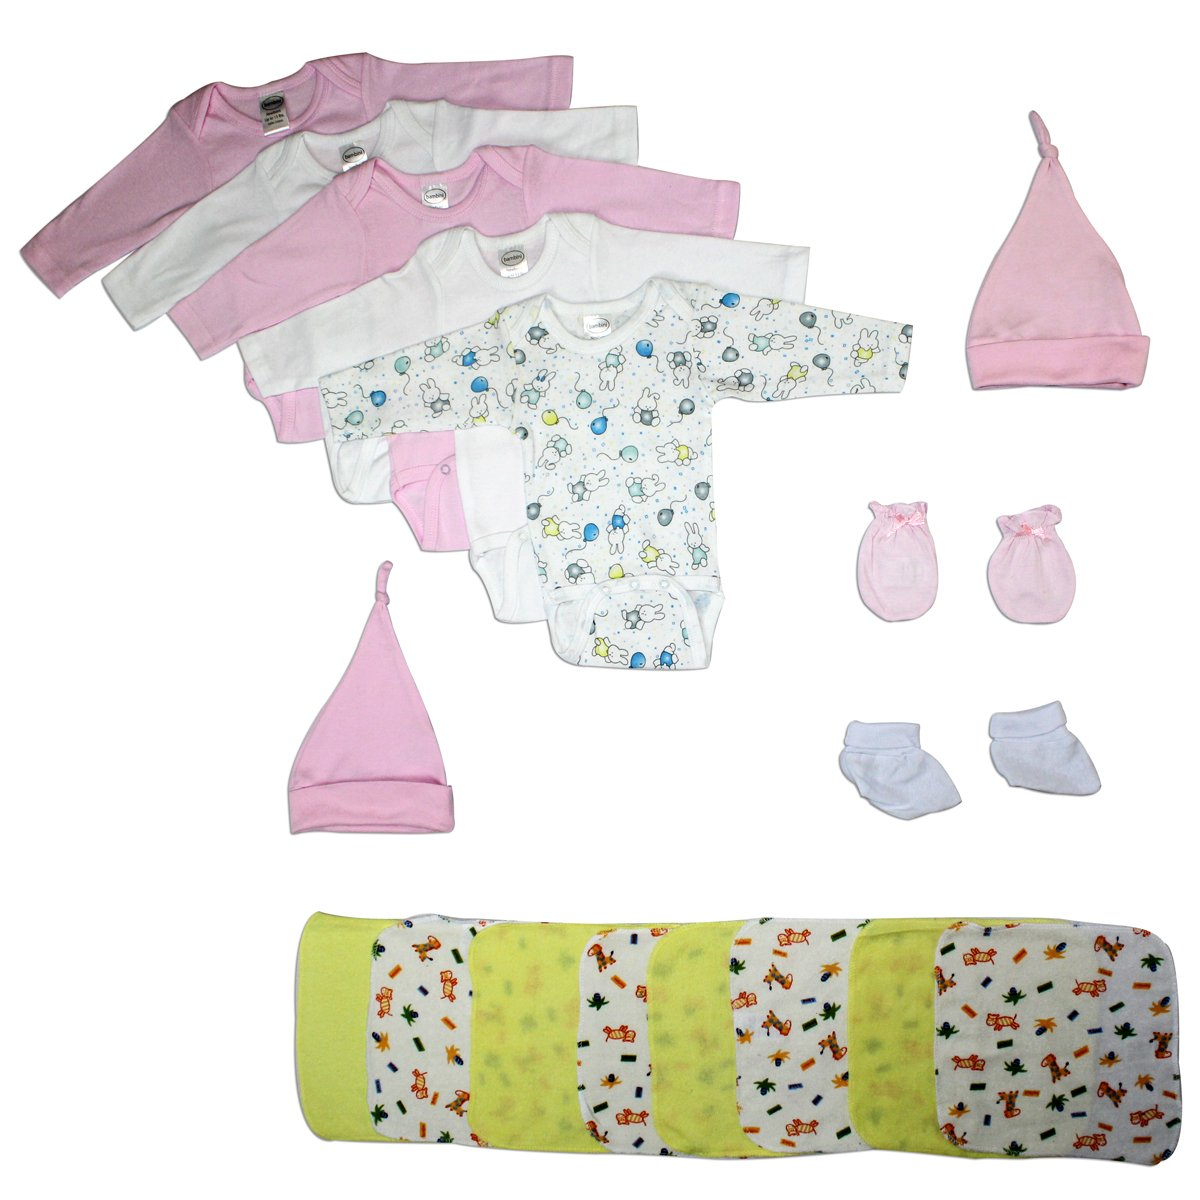 Bambini Newborn Baby Girl 17 pcs Layette Baby Shower Gift Set - Baby World Inc